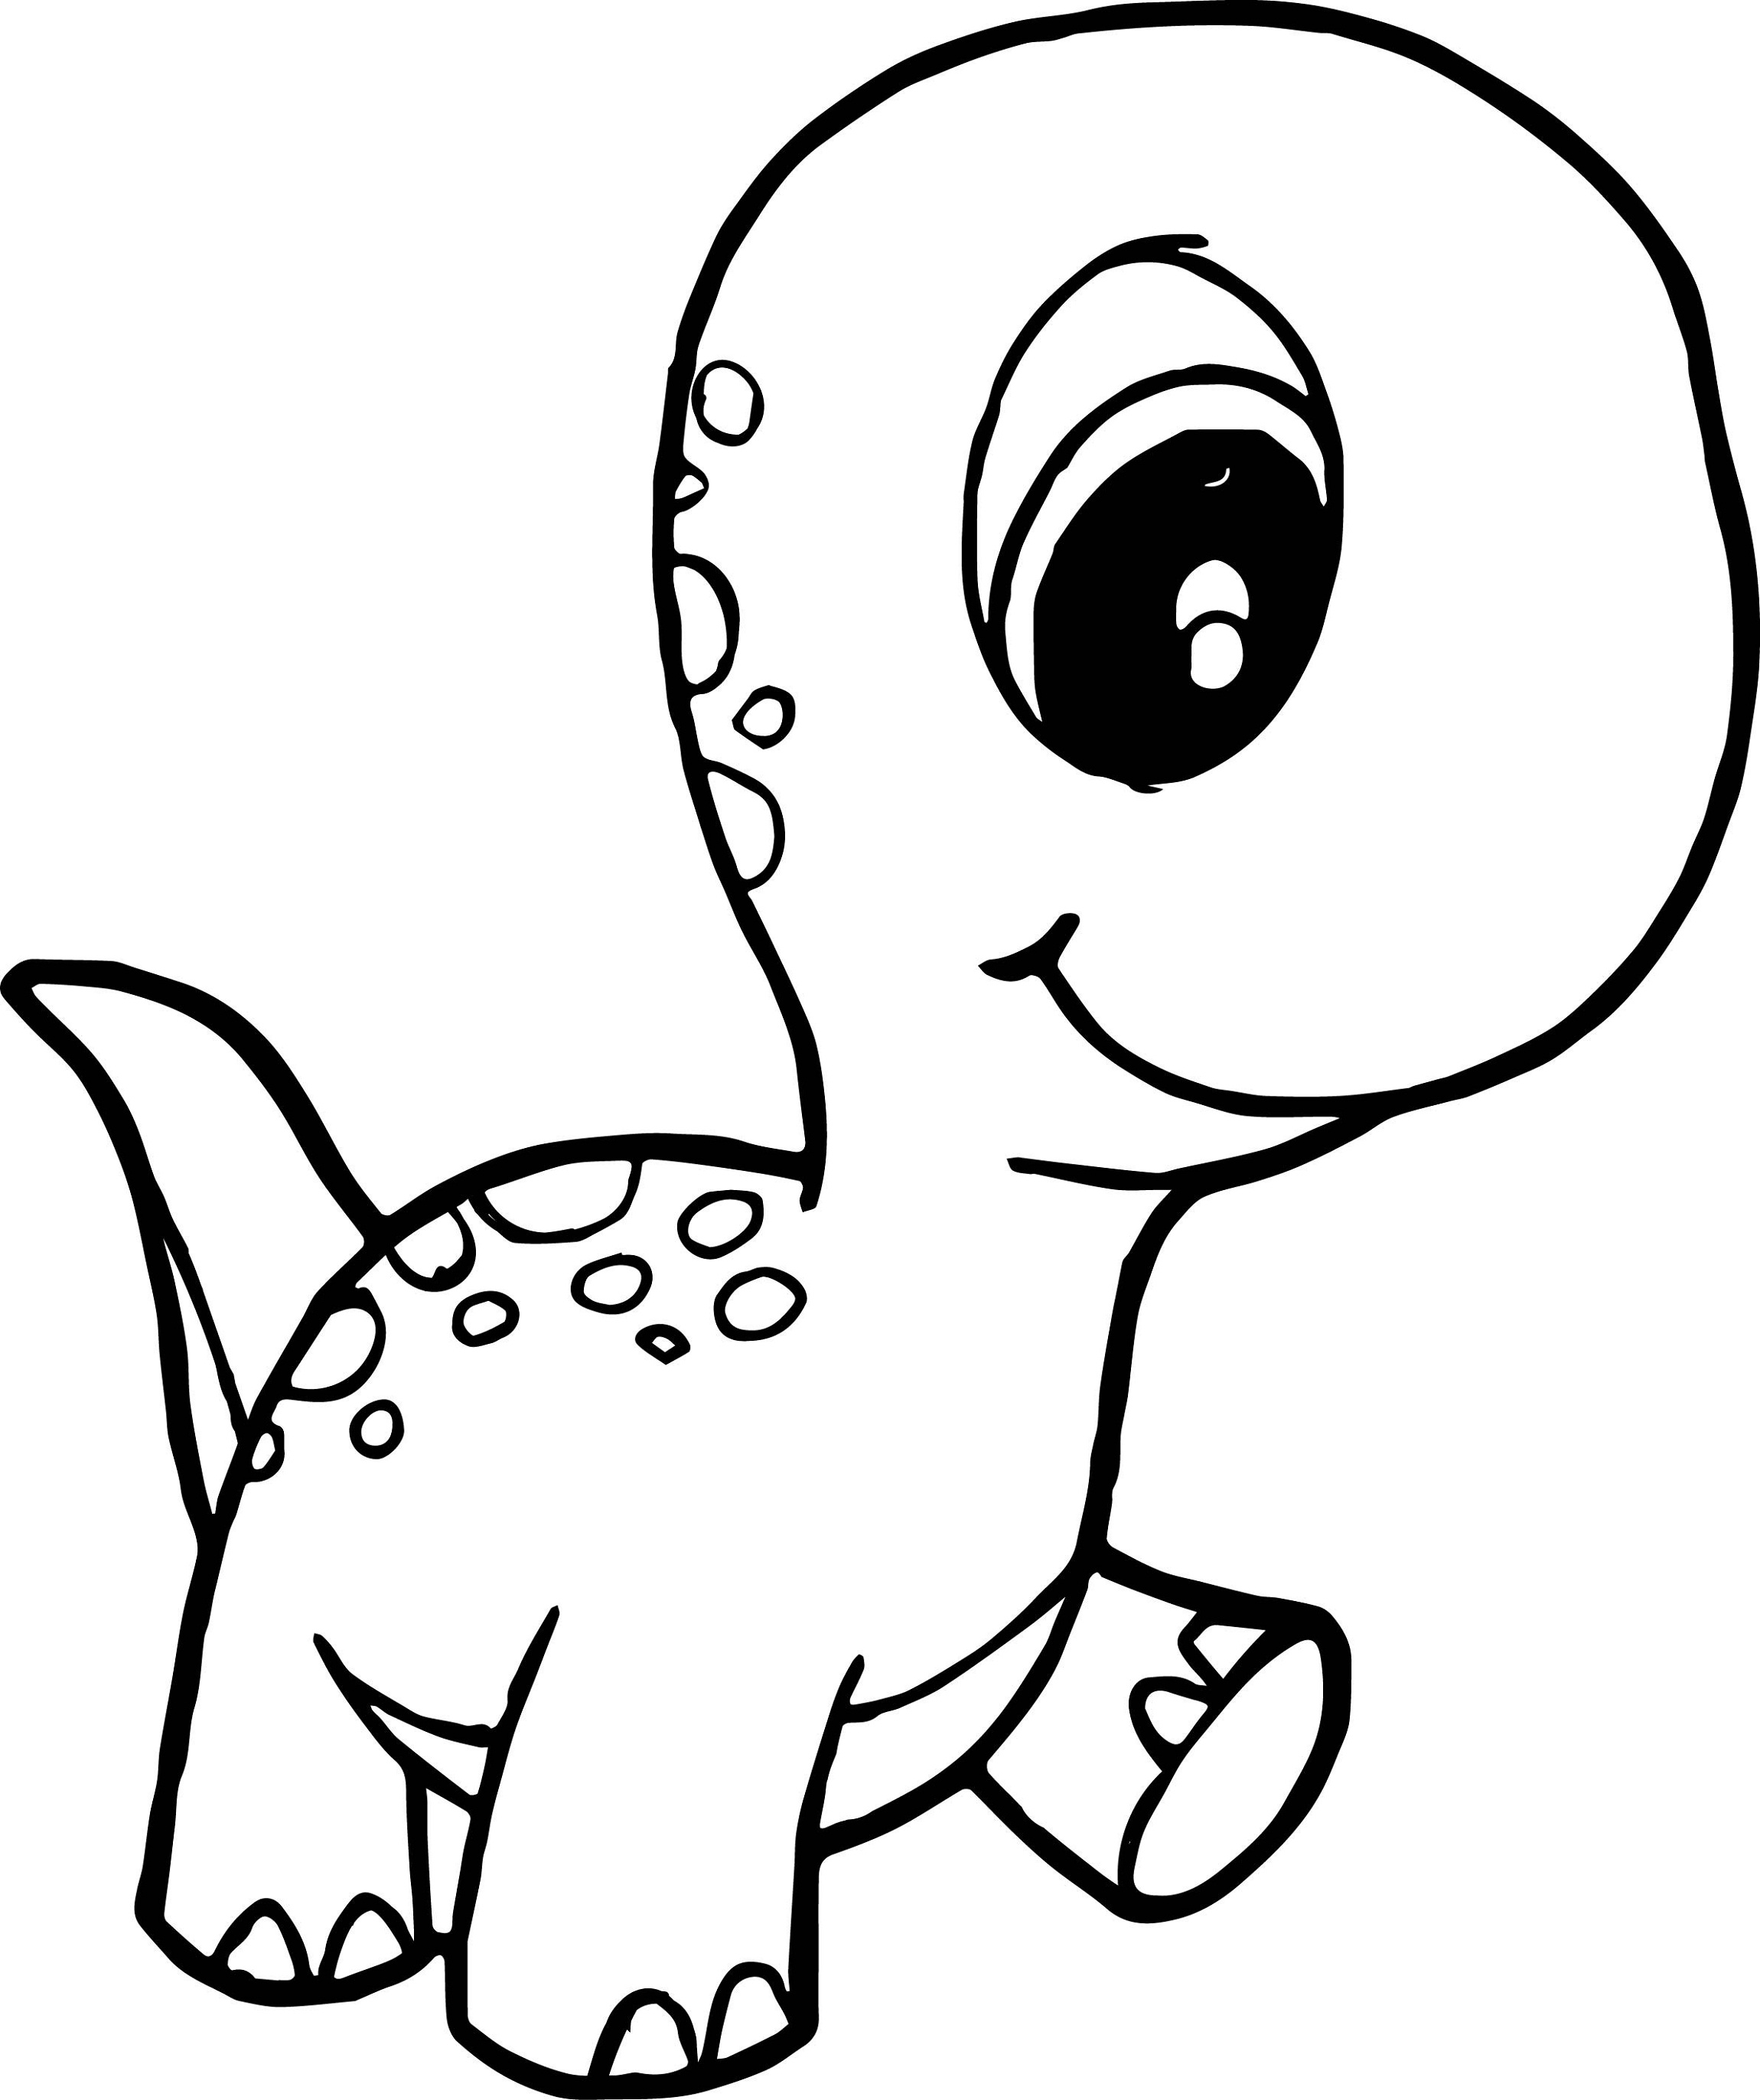 dinosaur coloring easy easy dinosaur coloring pages coloring home easy dinosaur coloring